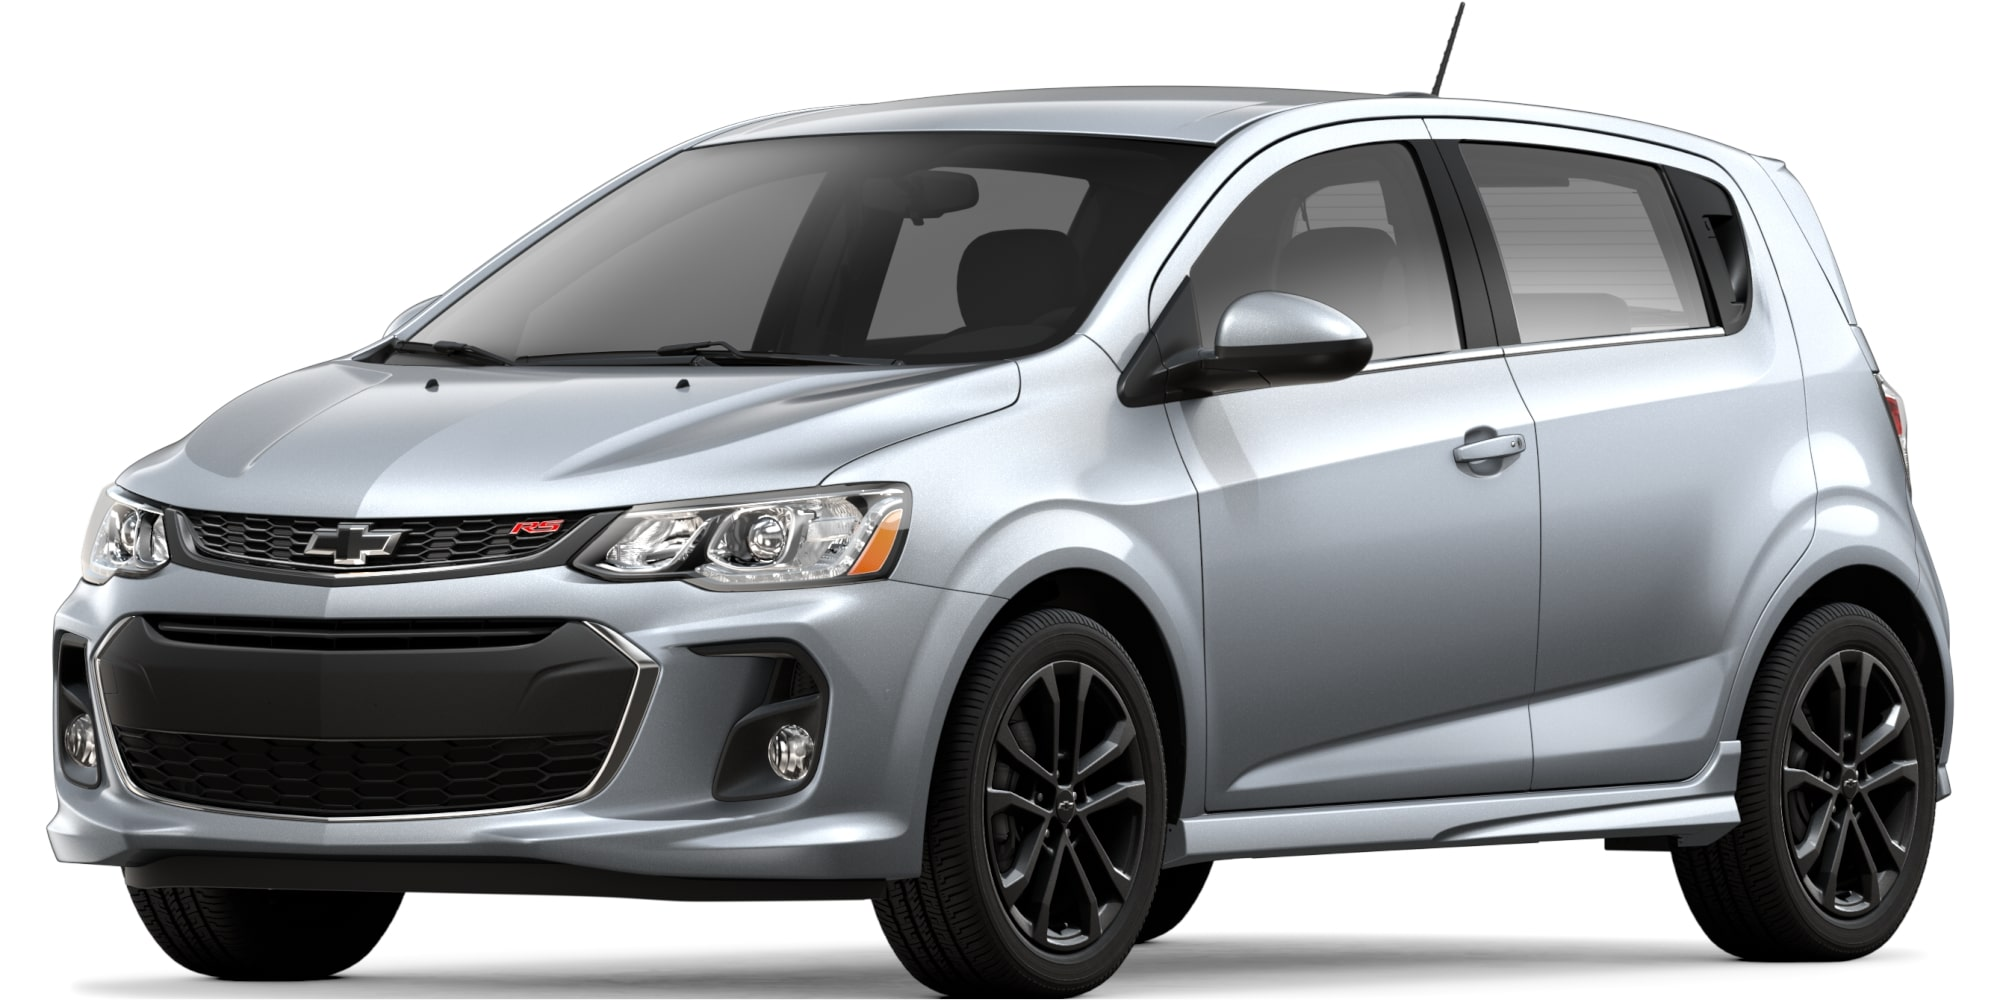 2010 Chevy Sonic Diagram Detailed Schematics Colorado I4 Engine 2019 Small Car Available In Sedan Hatchback